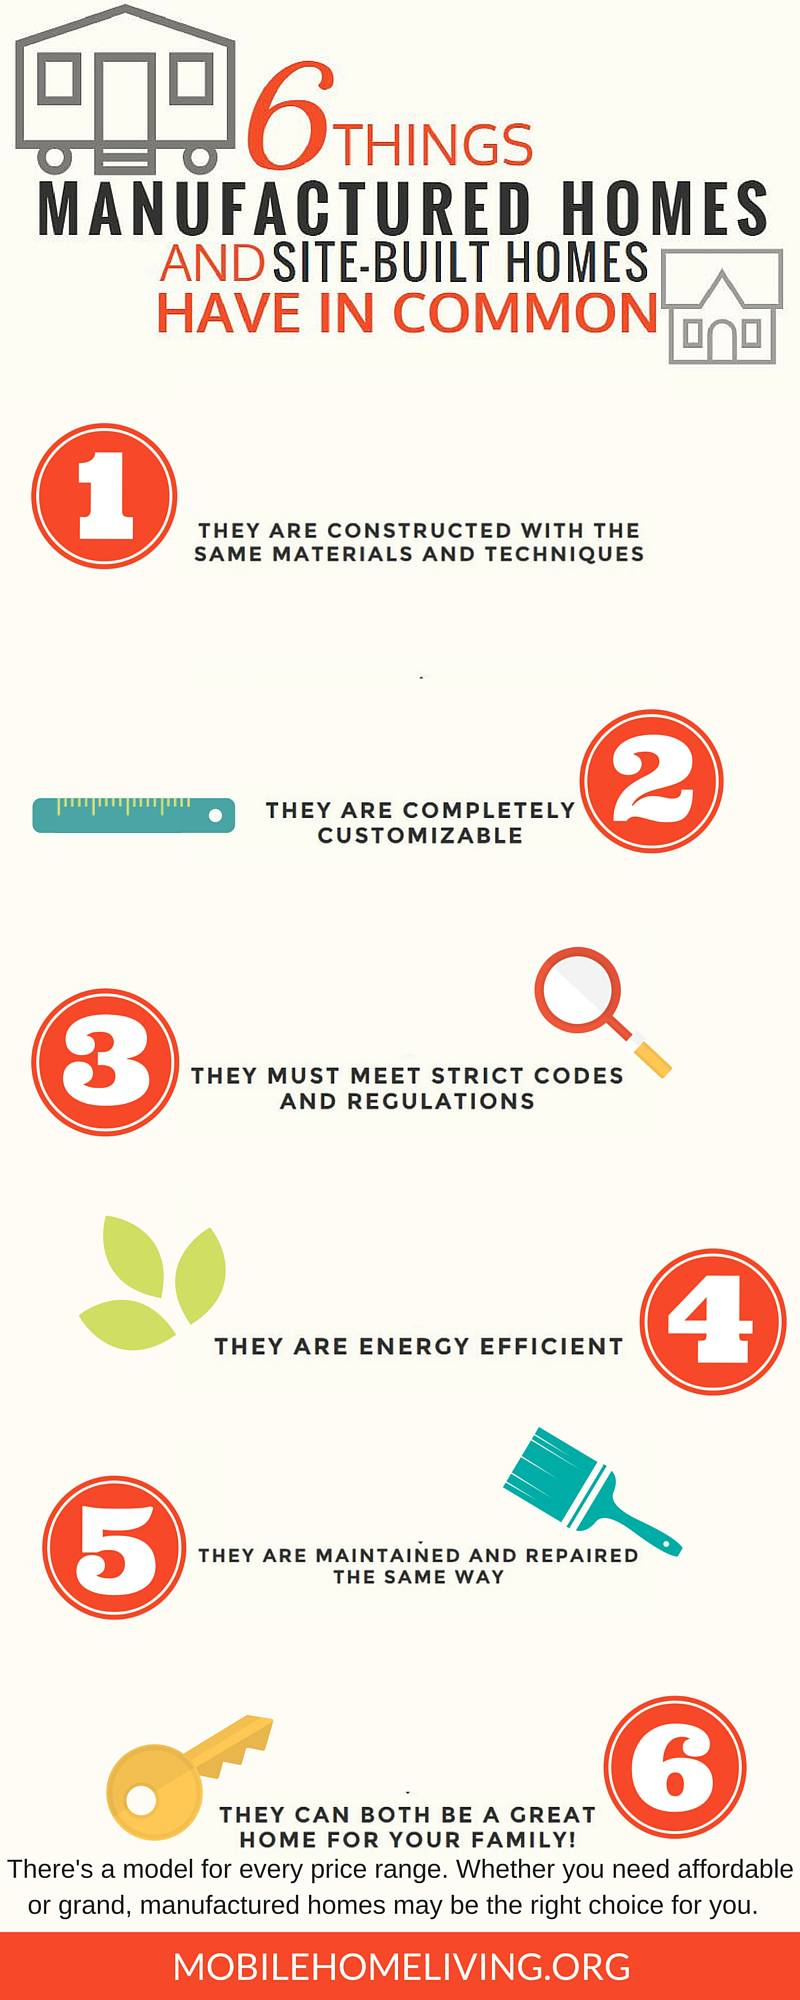 Manufactured Homes and Site Built Homes Common Infographic